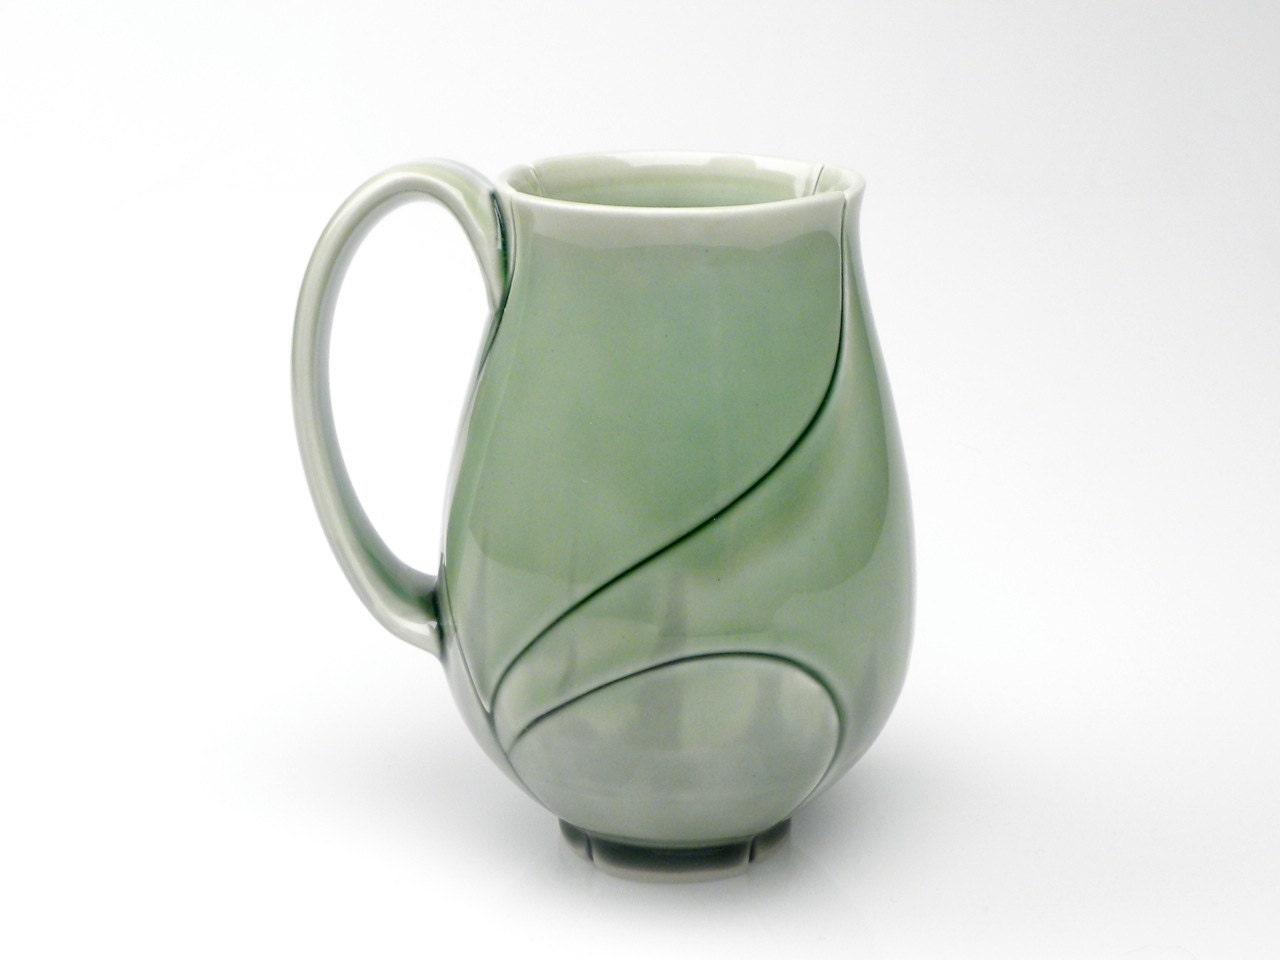 Tall Large Green Lotus Mug 18 Ounce Emerald Green - CampanaCeramics